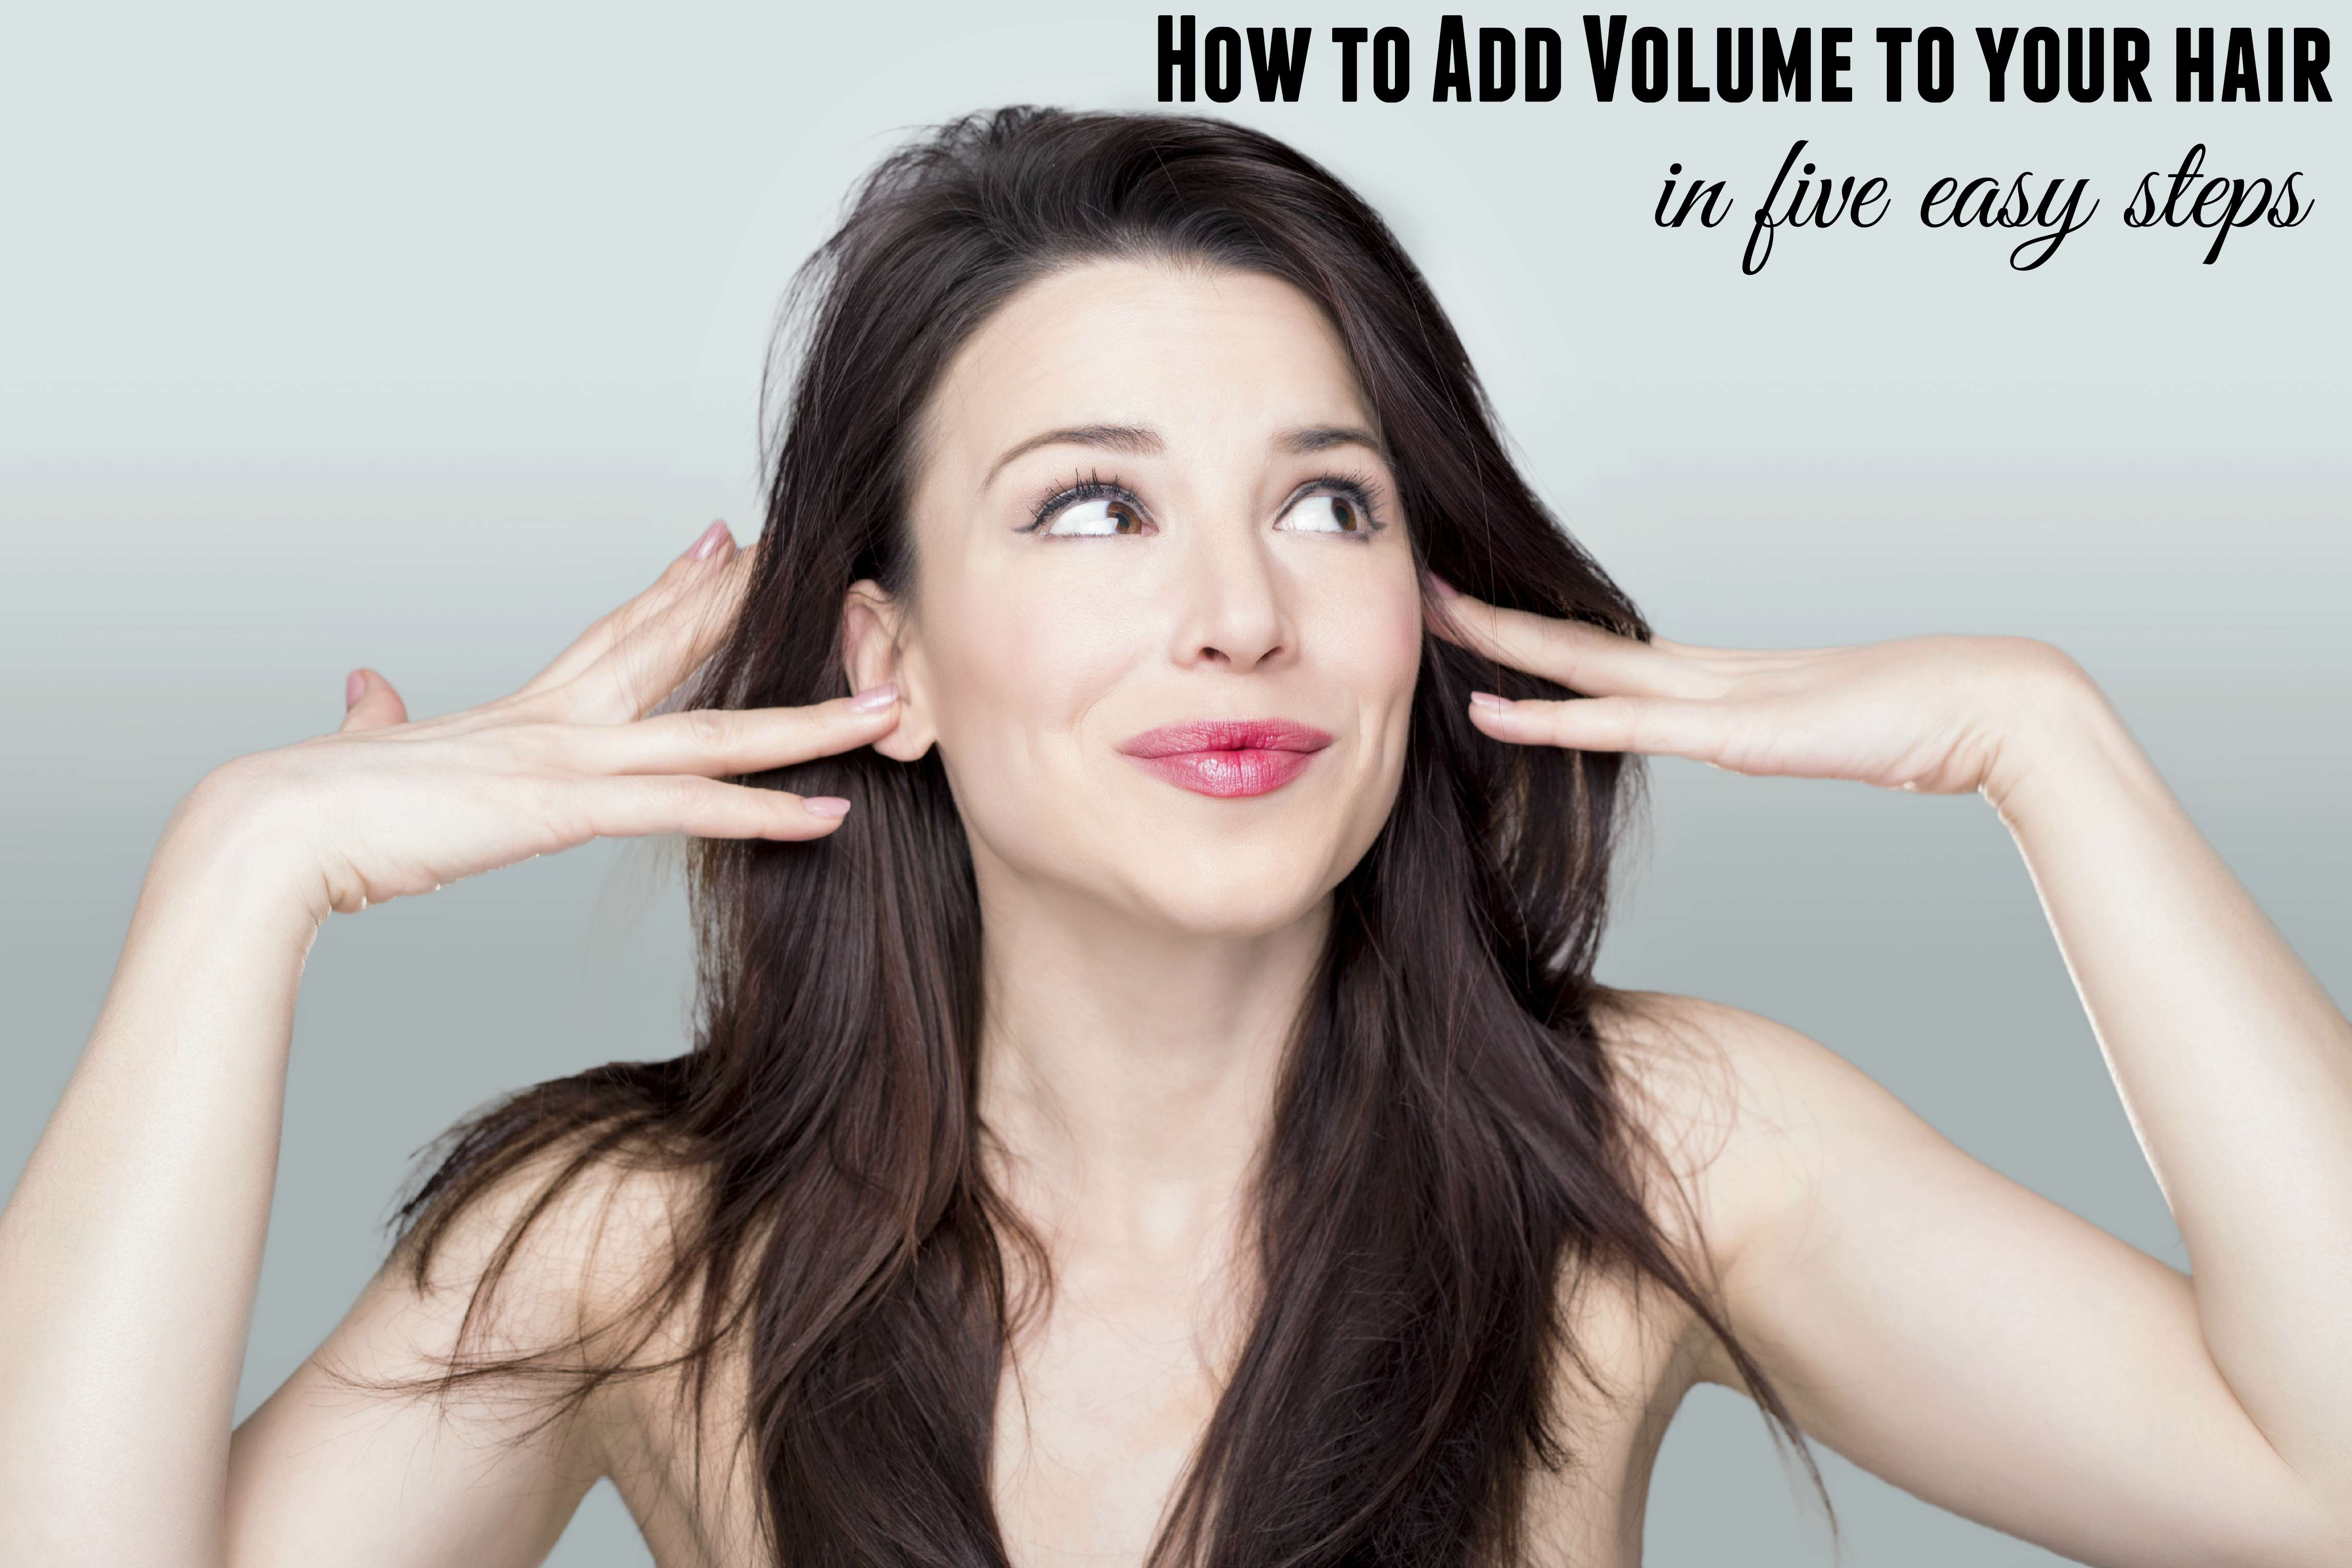 How to add your to volume hair 2019